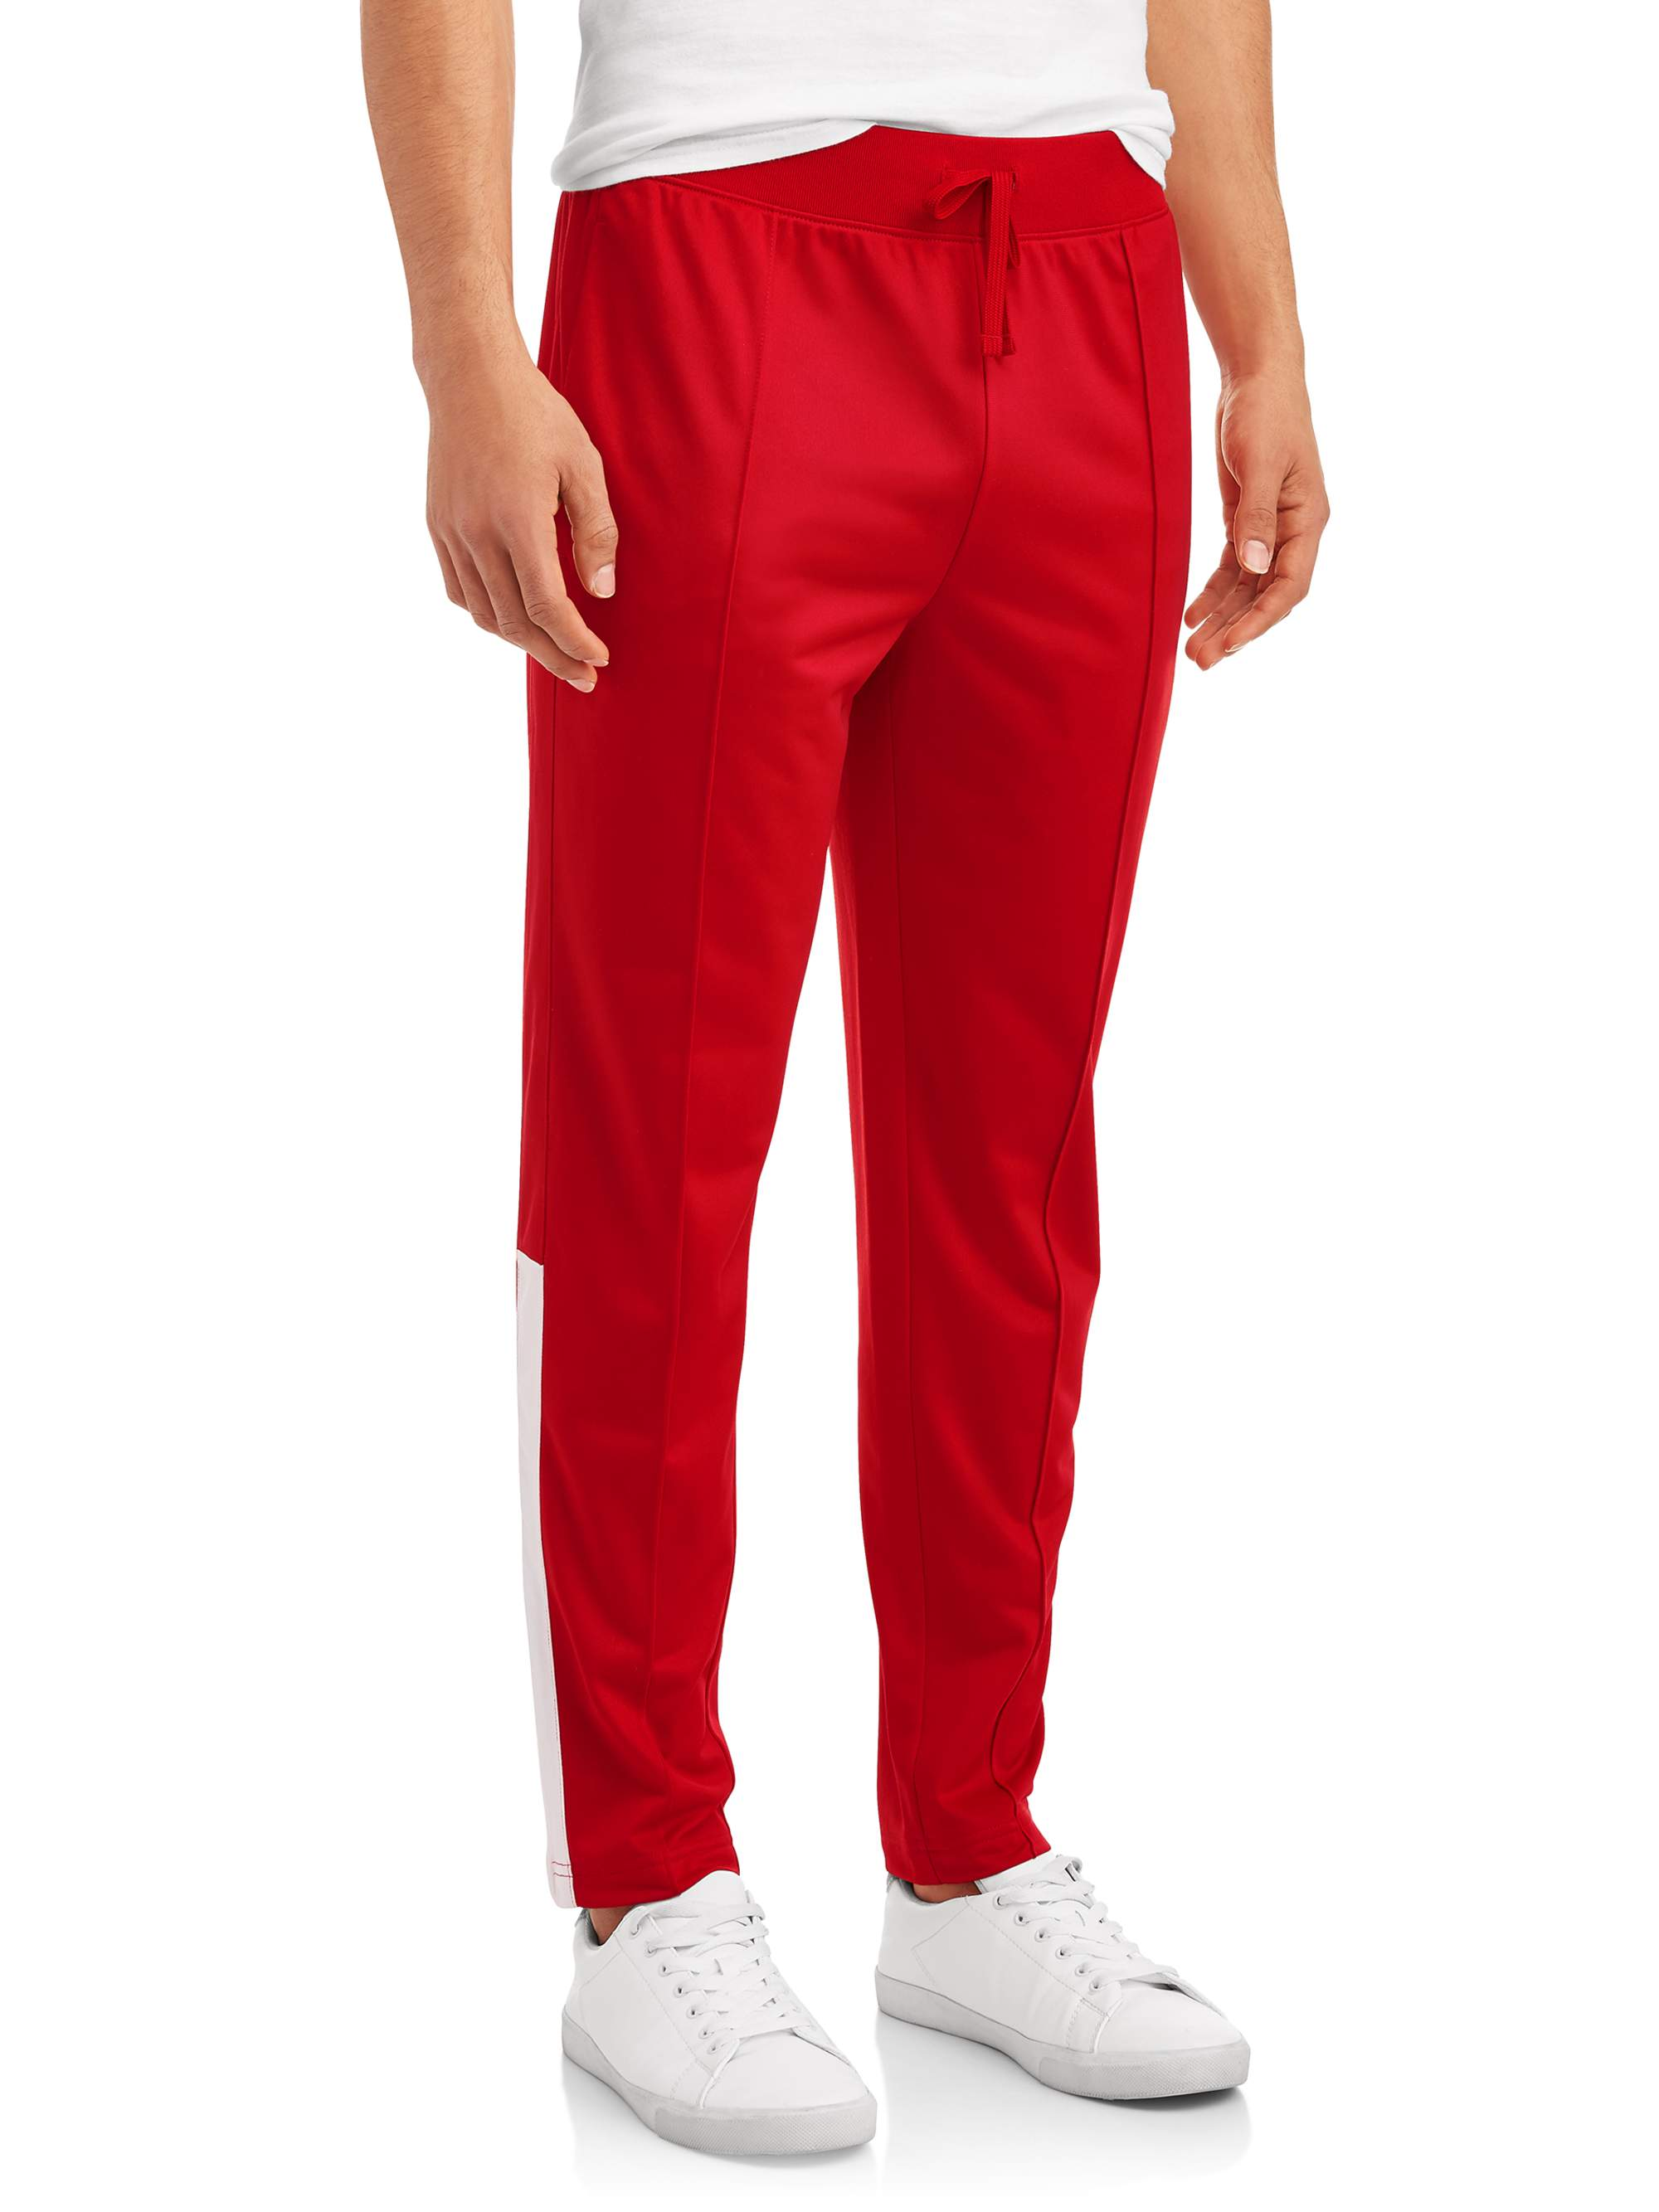 Russell Exclusive Big Men's Retro Track Pant